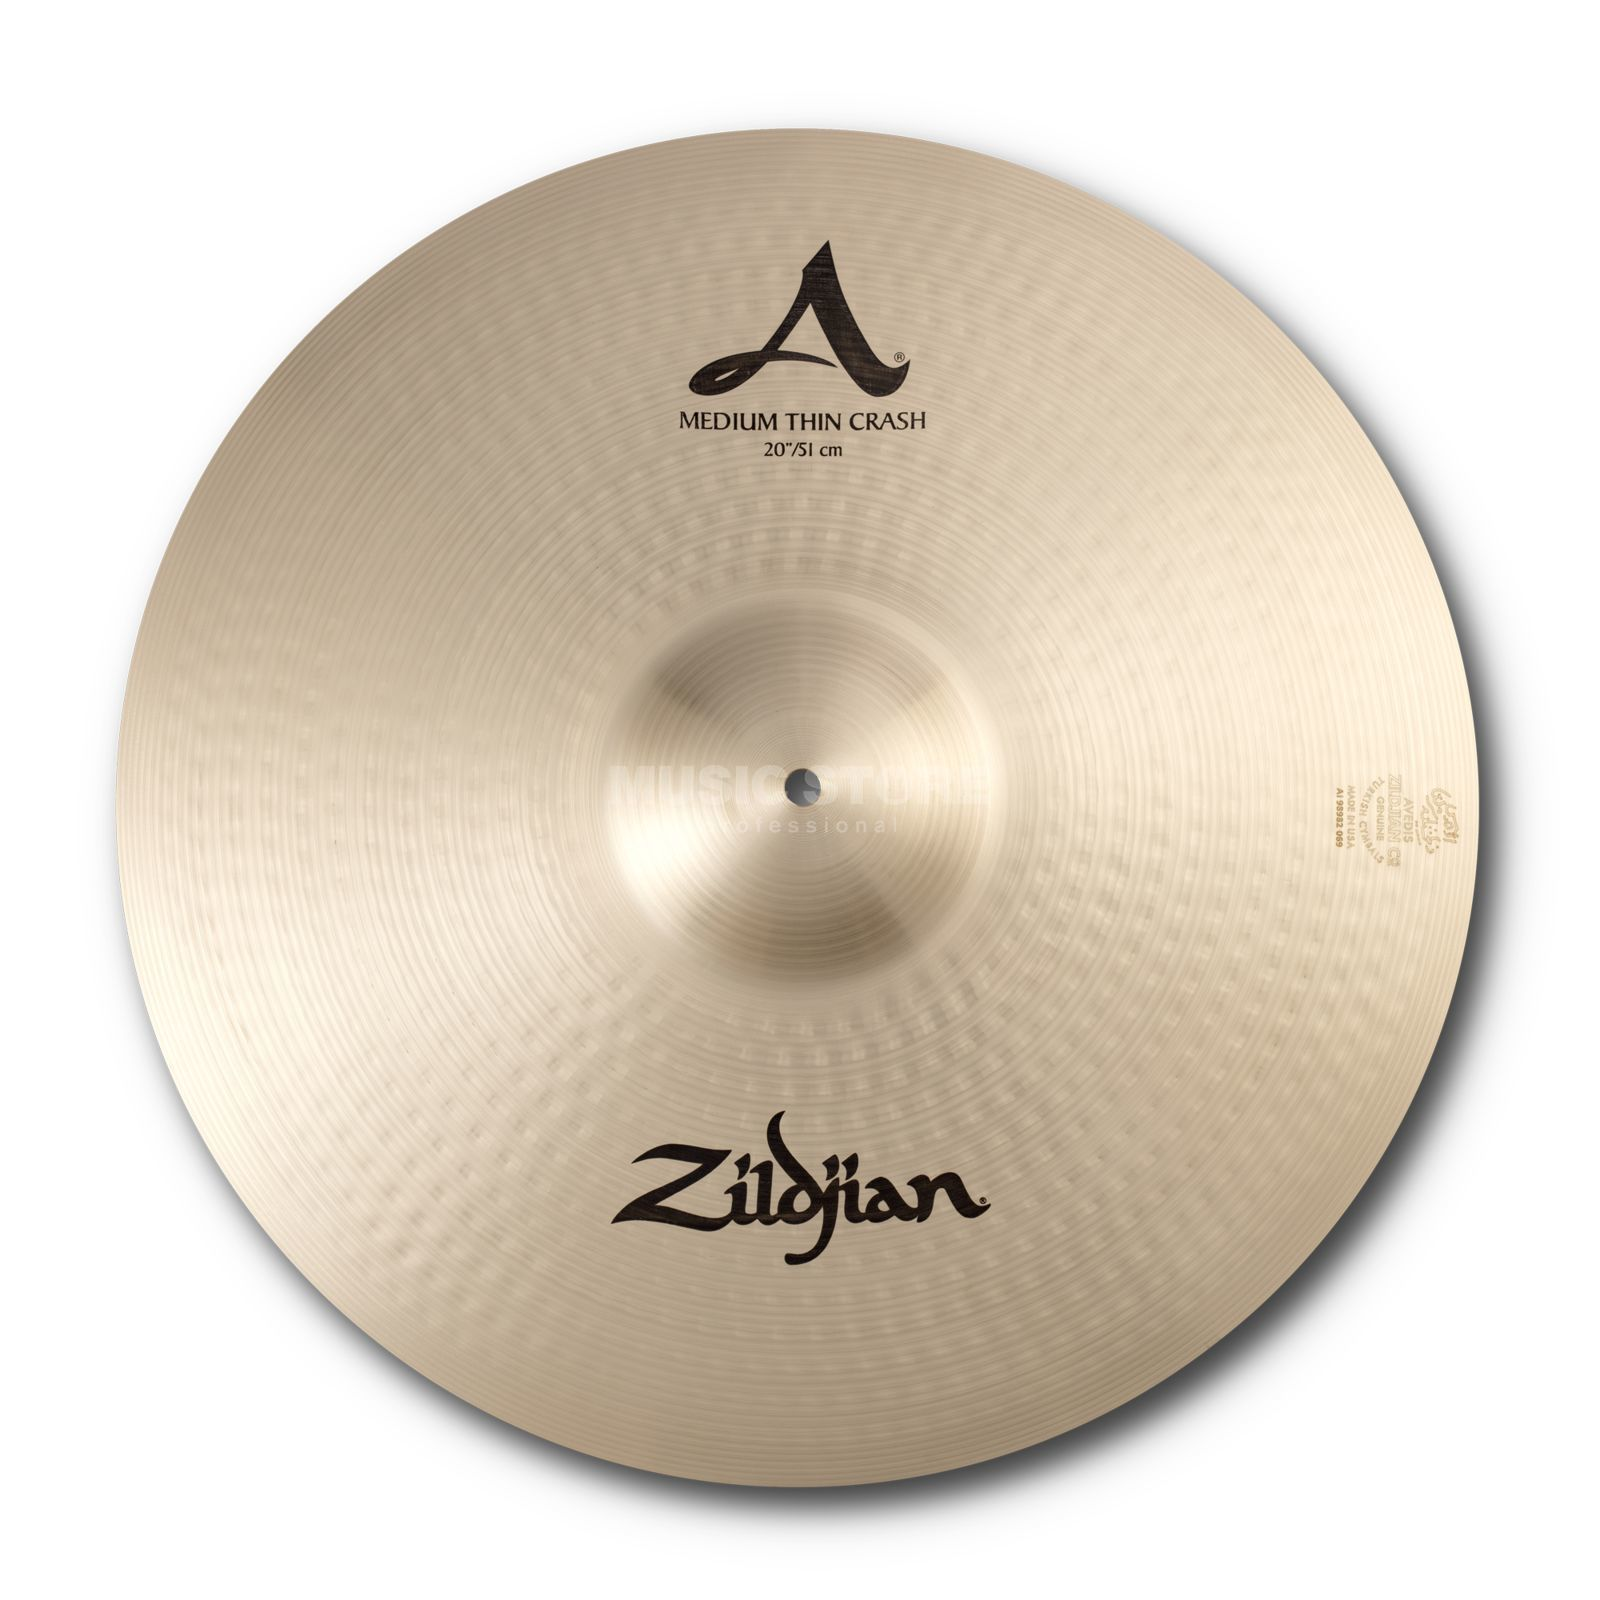 "Zildjian A' Zildjian Med/Thin Crash 20"" Traditional Finish Produktbillede"